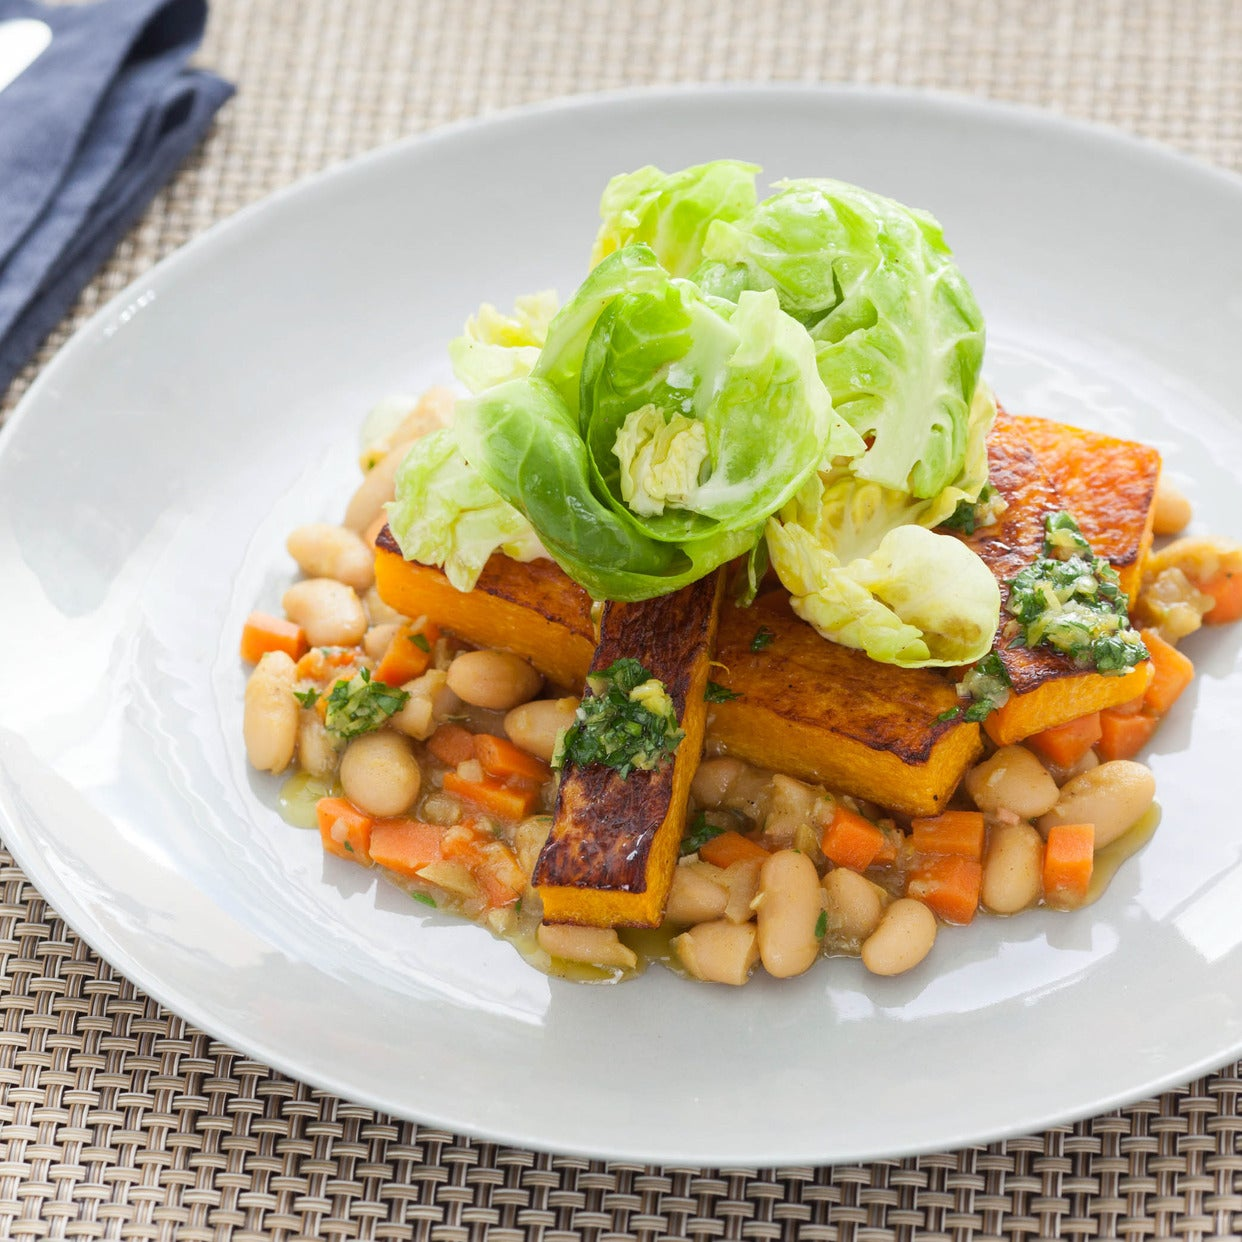 Roasted Butternut Squash with Stewed White Beans, Brussels Sprouts & Gremolata